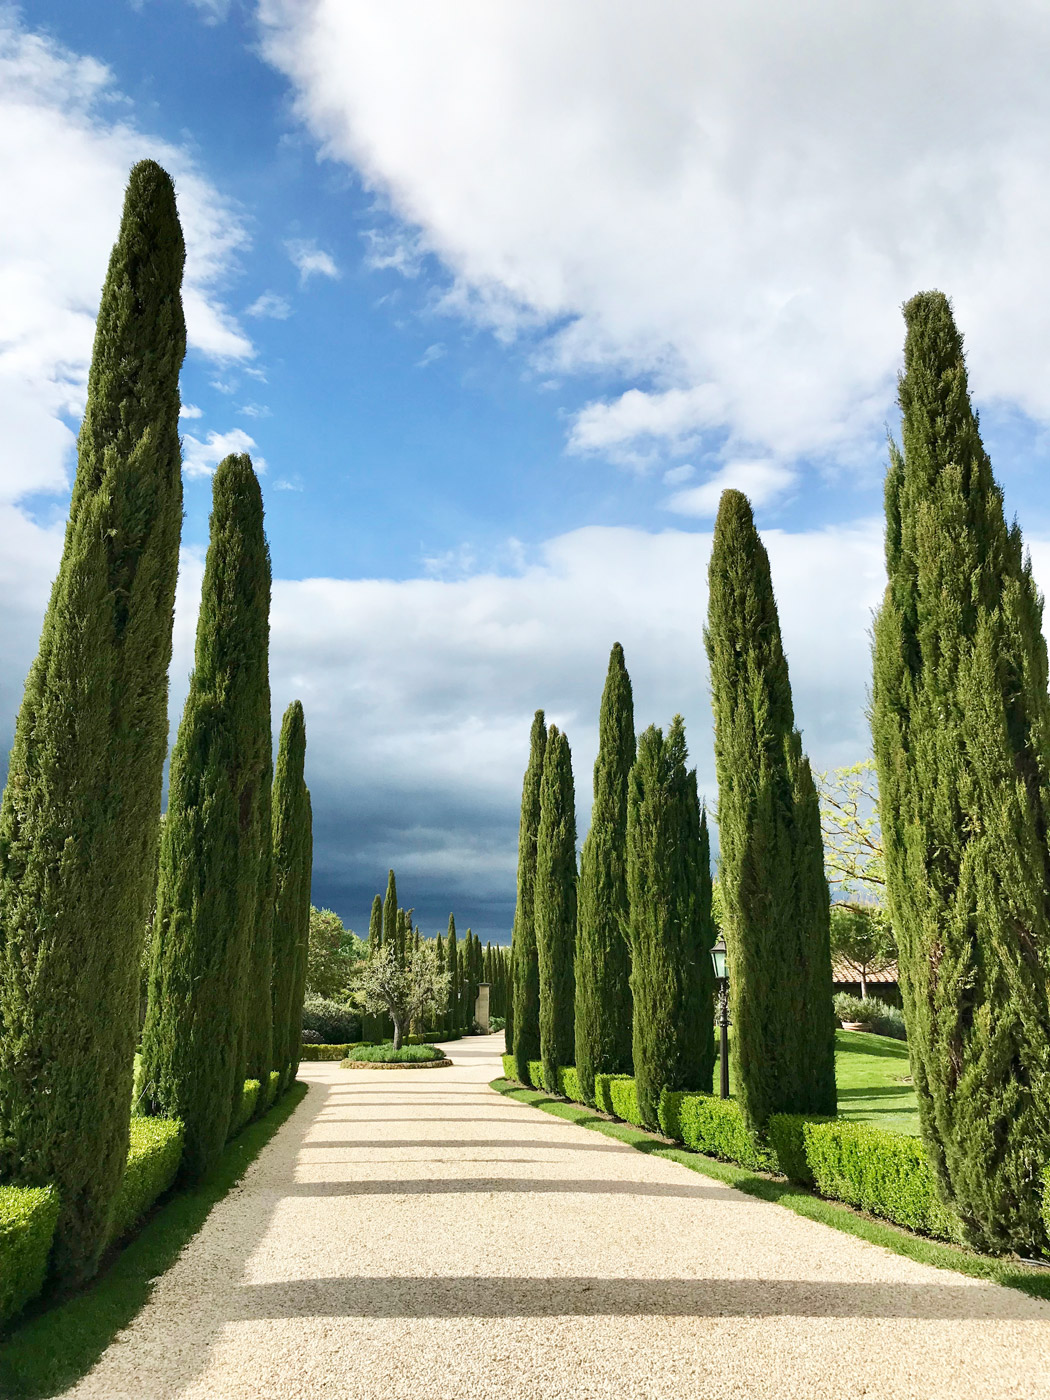 The stunning tree-lined entrance to Borgo Santo Pietro.